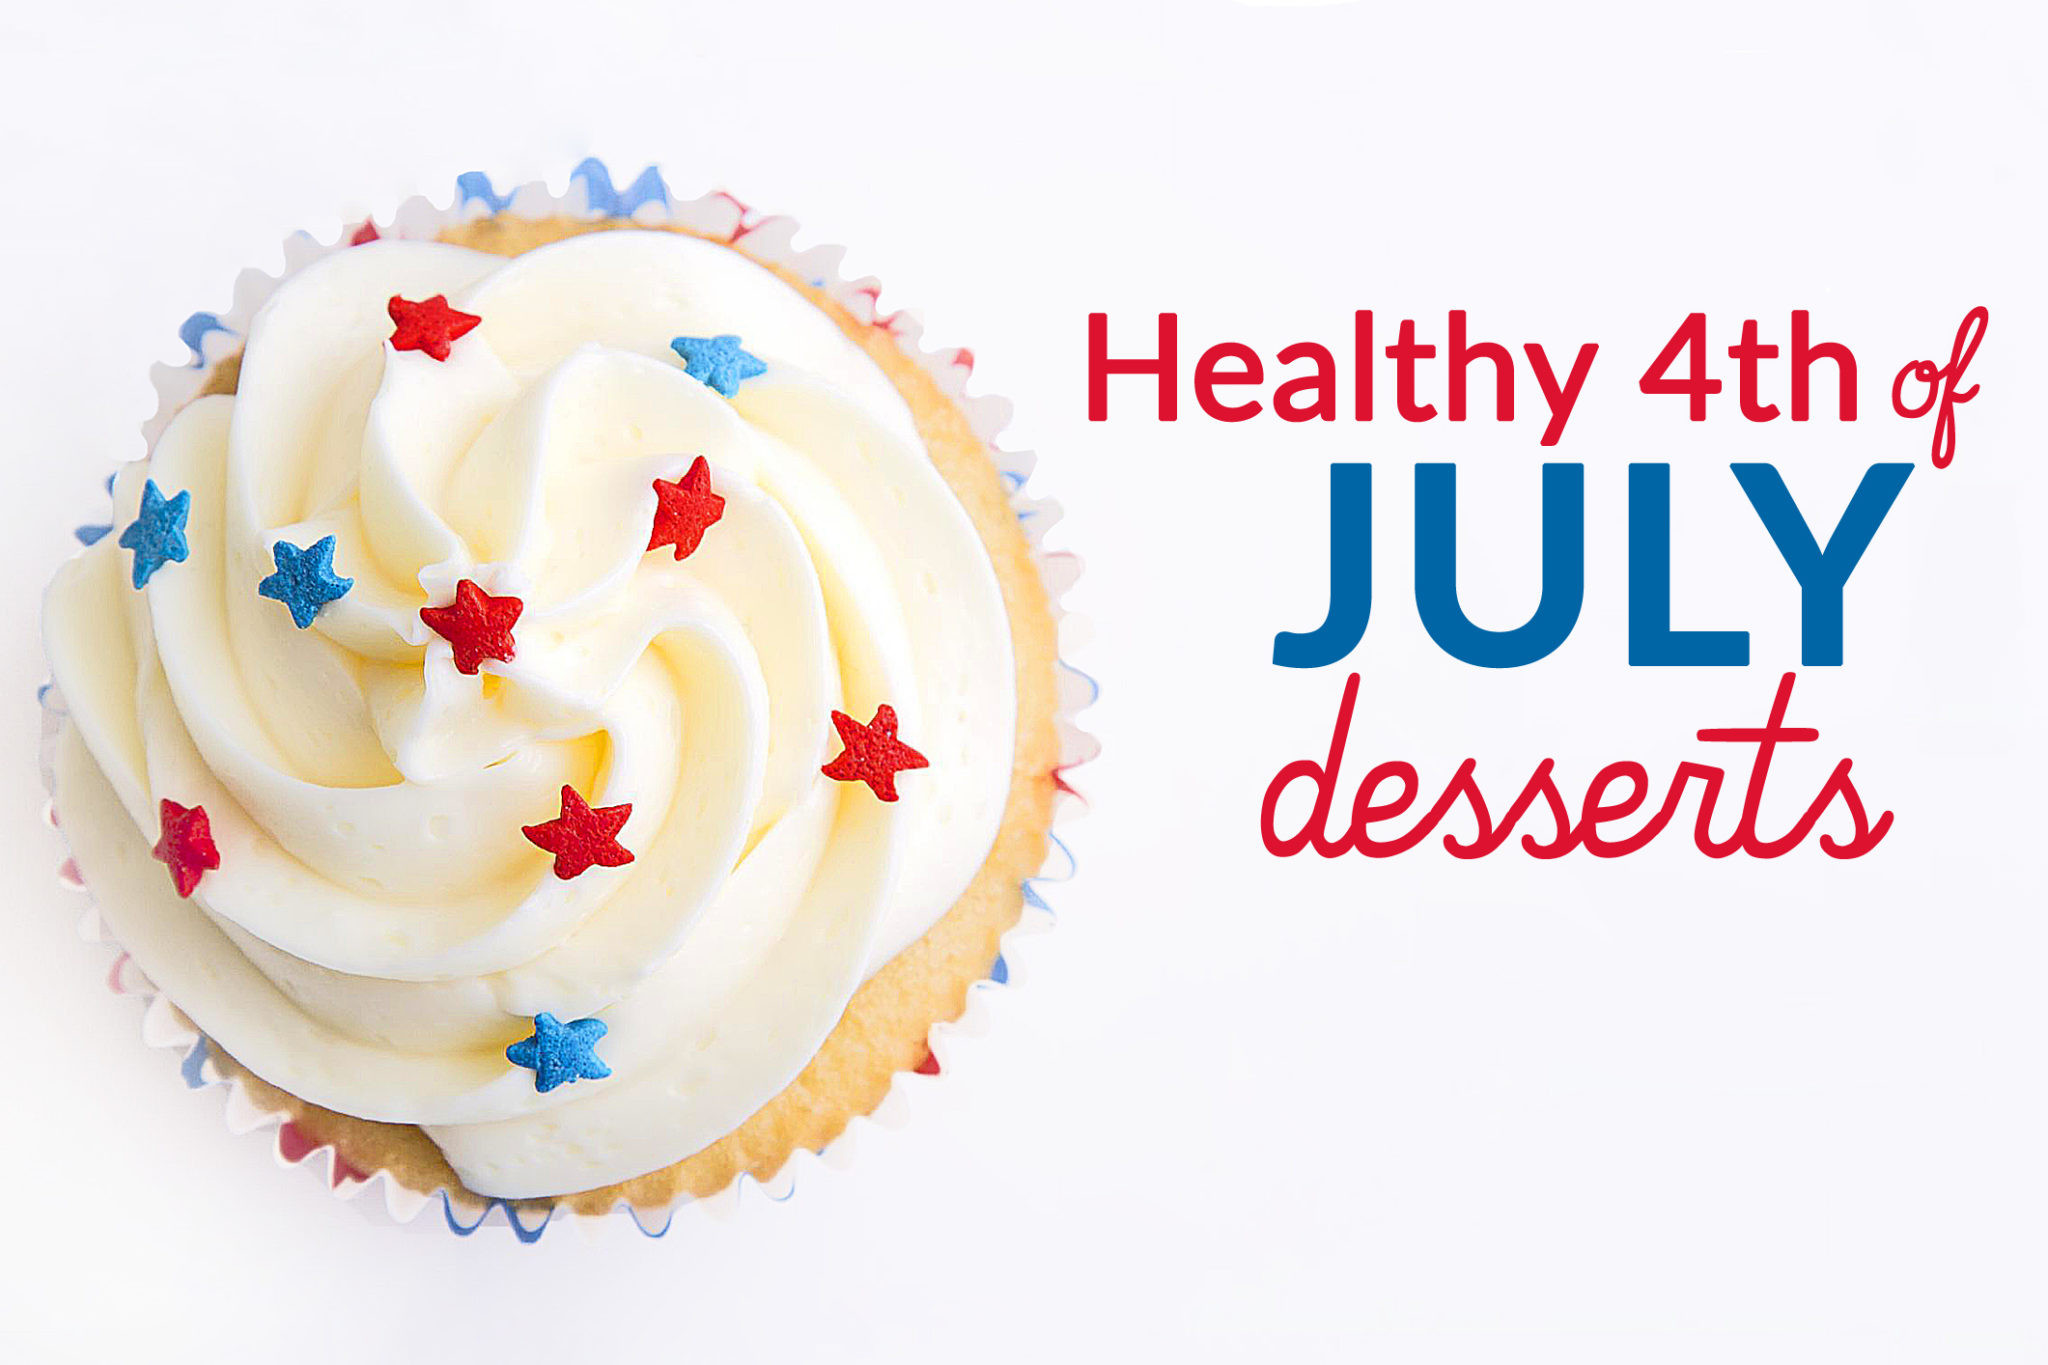 Healthy Fourth Of July Desserts  Recipe Roundup Healthy 4th of July Desserts Healthy